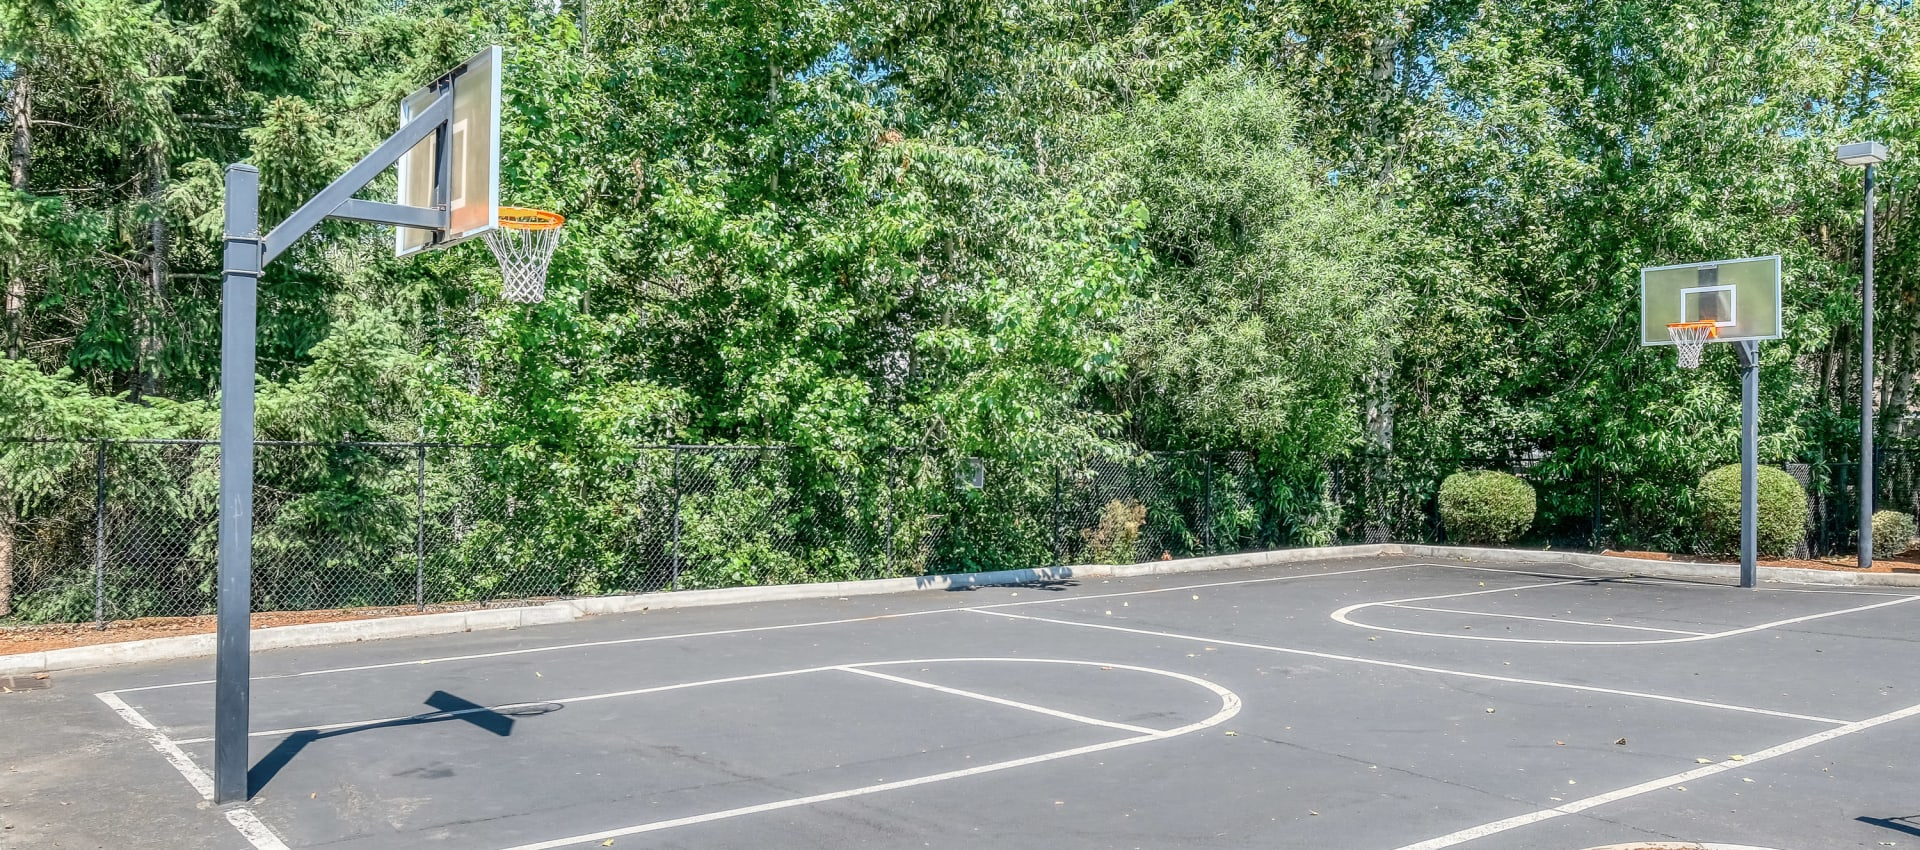 Basketball Court at Centro Apartment Homes